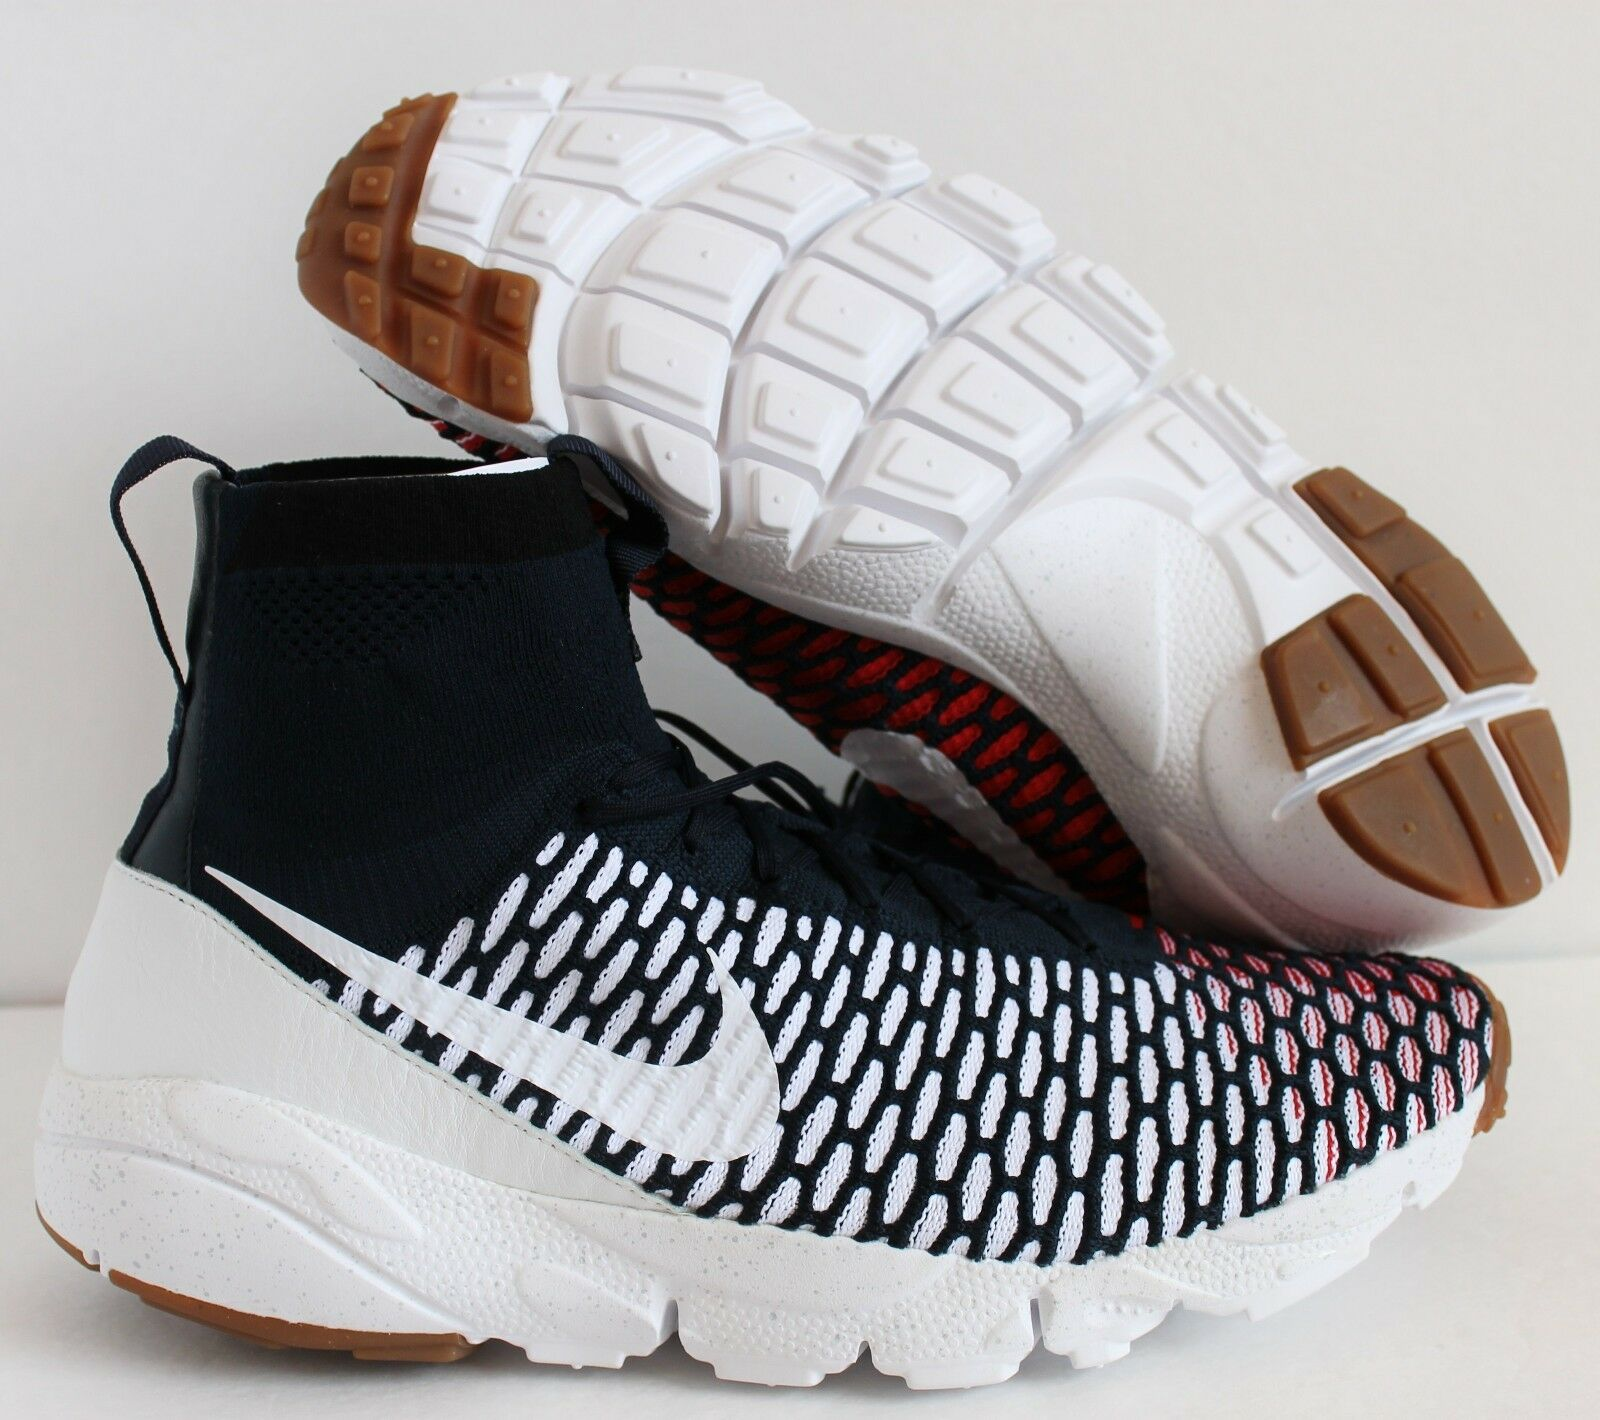 Nike Air Footscape Magista SP USA Dark Obsidian-White Price reduction Cheap women's shoes women's shoes